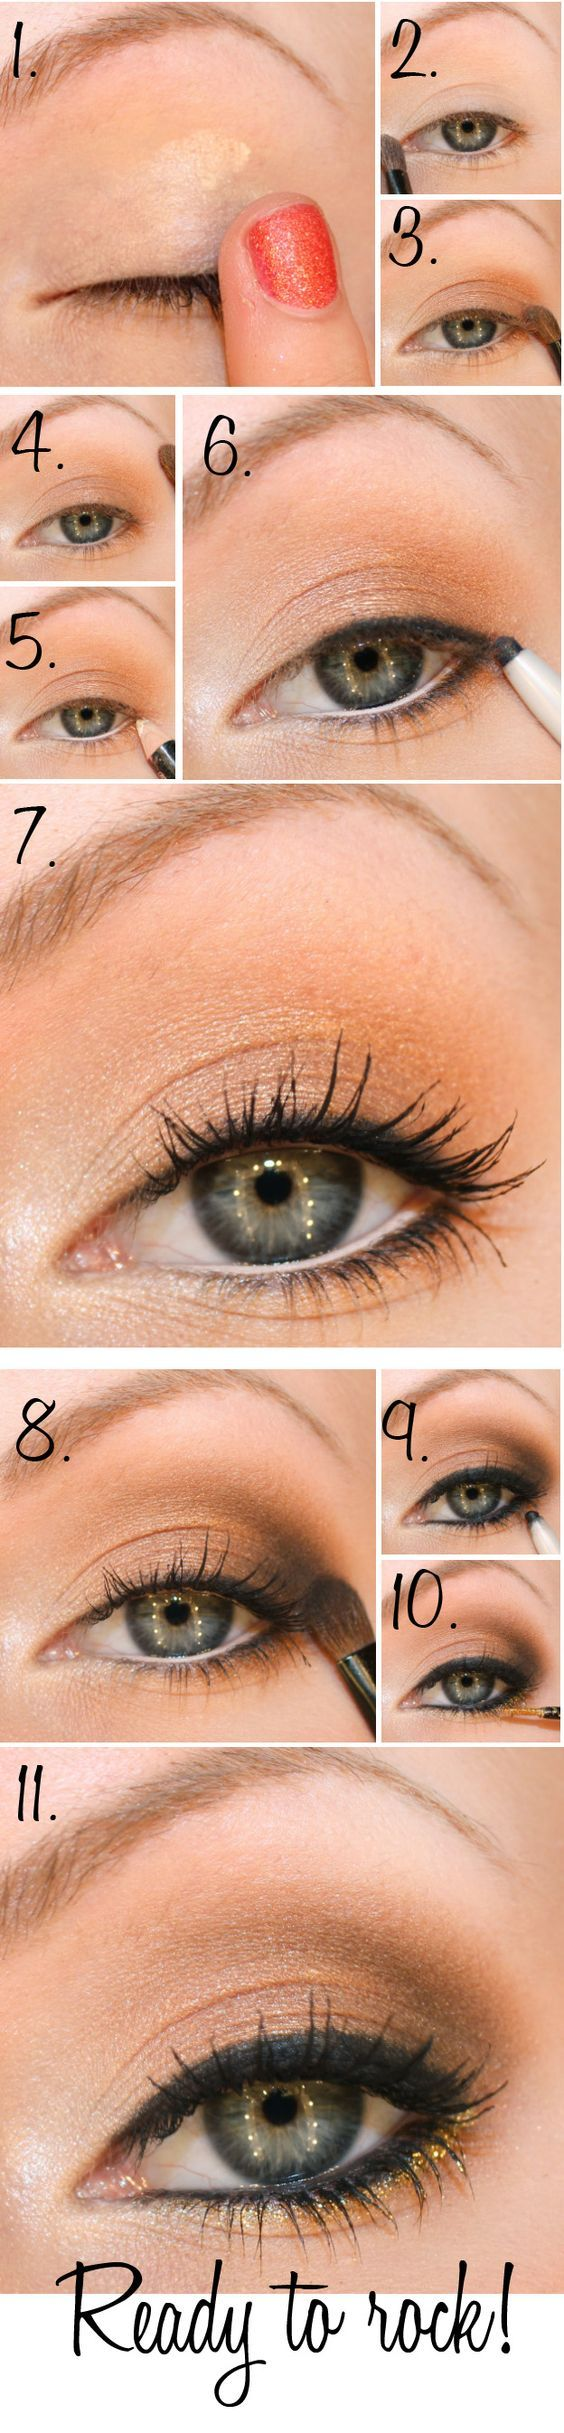 Top 12 Naked Eye Makeup Tutorial – Best Famous Fashion Design Trick & Look Idea - Way To Be Happy (6)